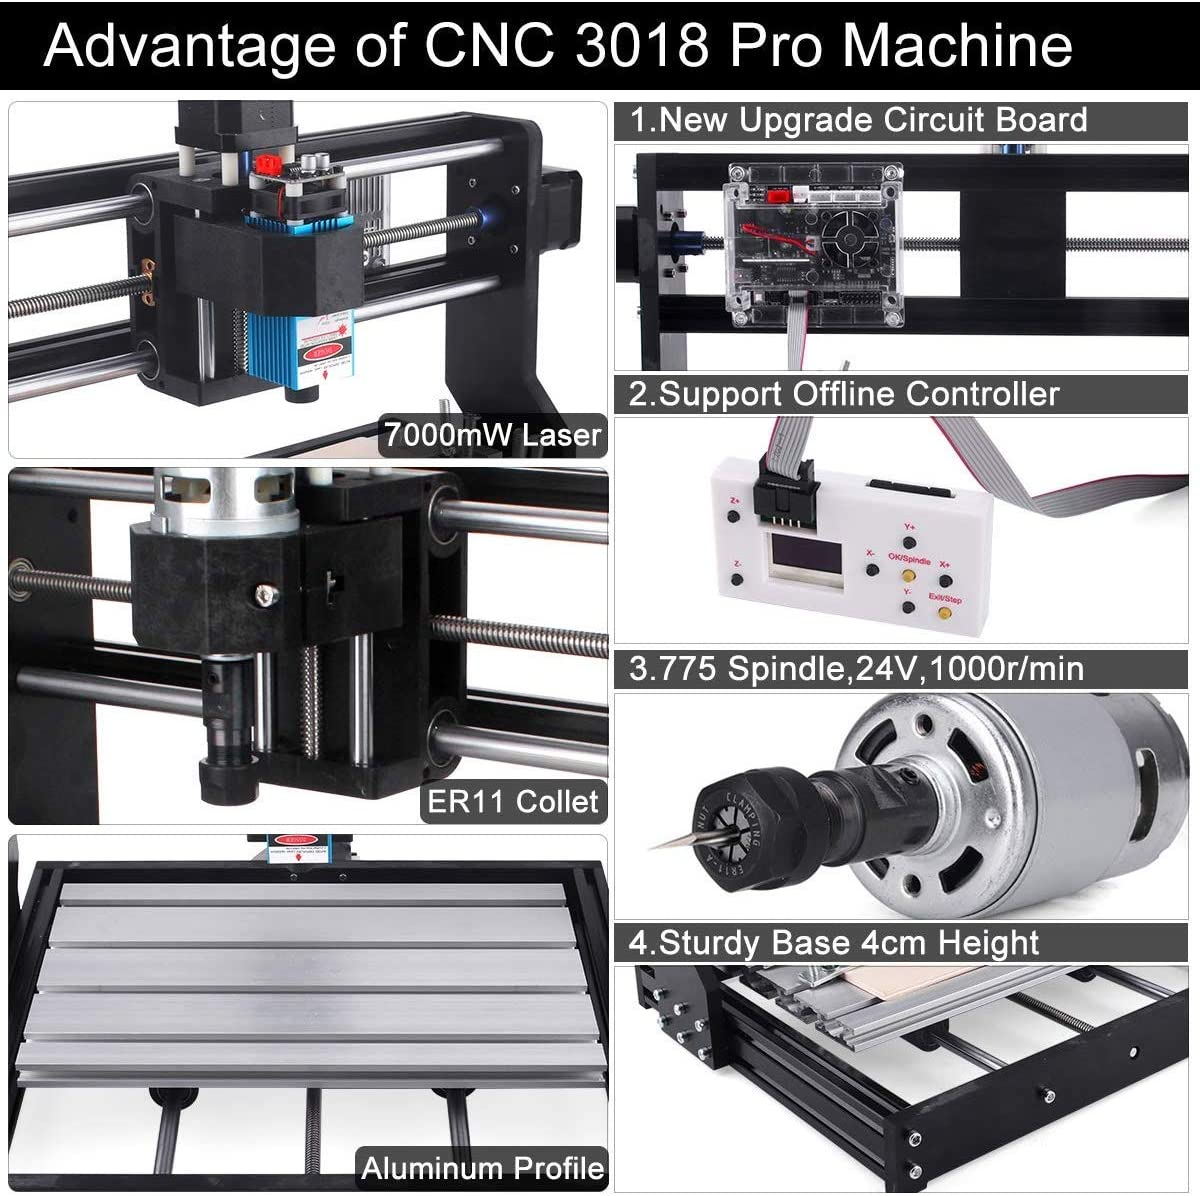 3 Axis PCB Milling Carving Machine CNC Router Kit with Offline Controller 7W Laser Engraver CNC 3018 Pro GRBL Control Engraving Machine 7000mW Working Area 300x180x45mm